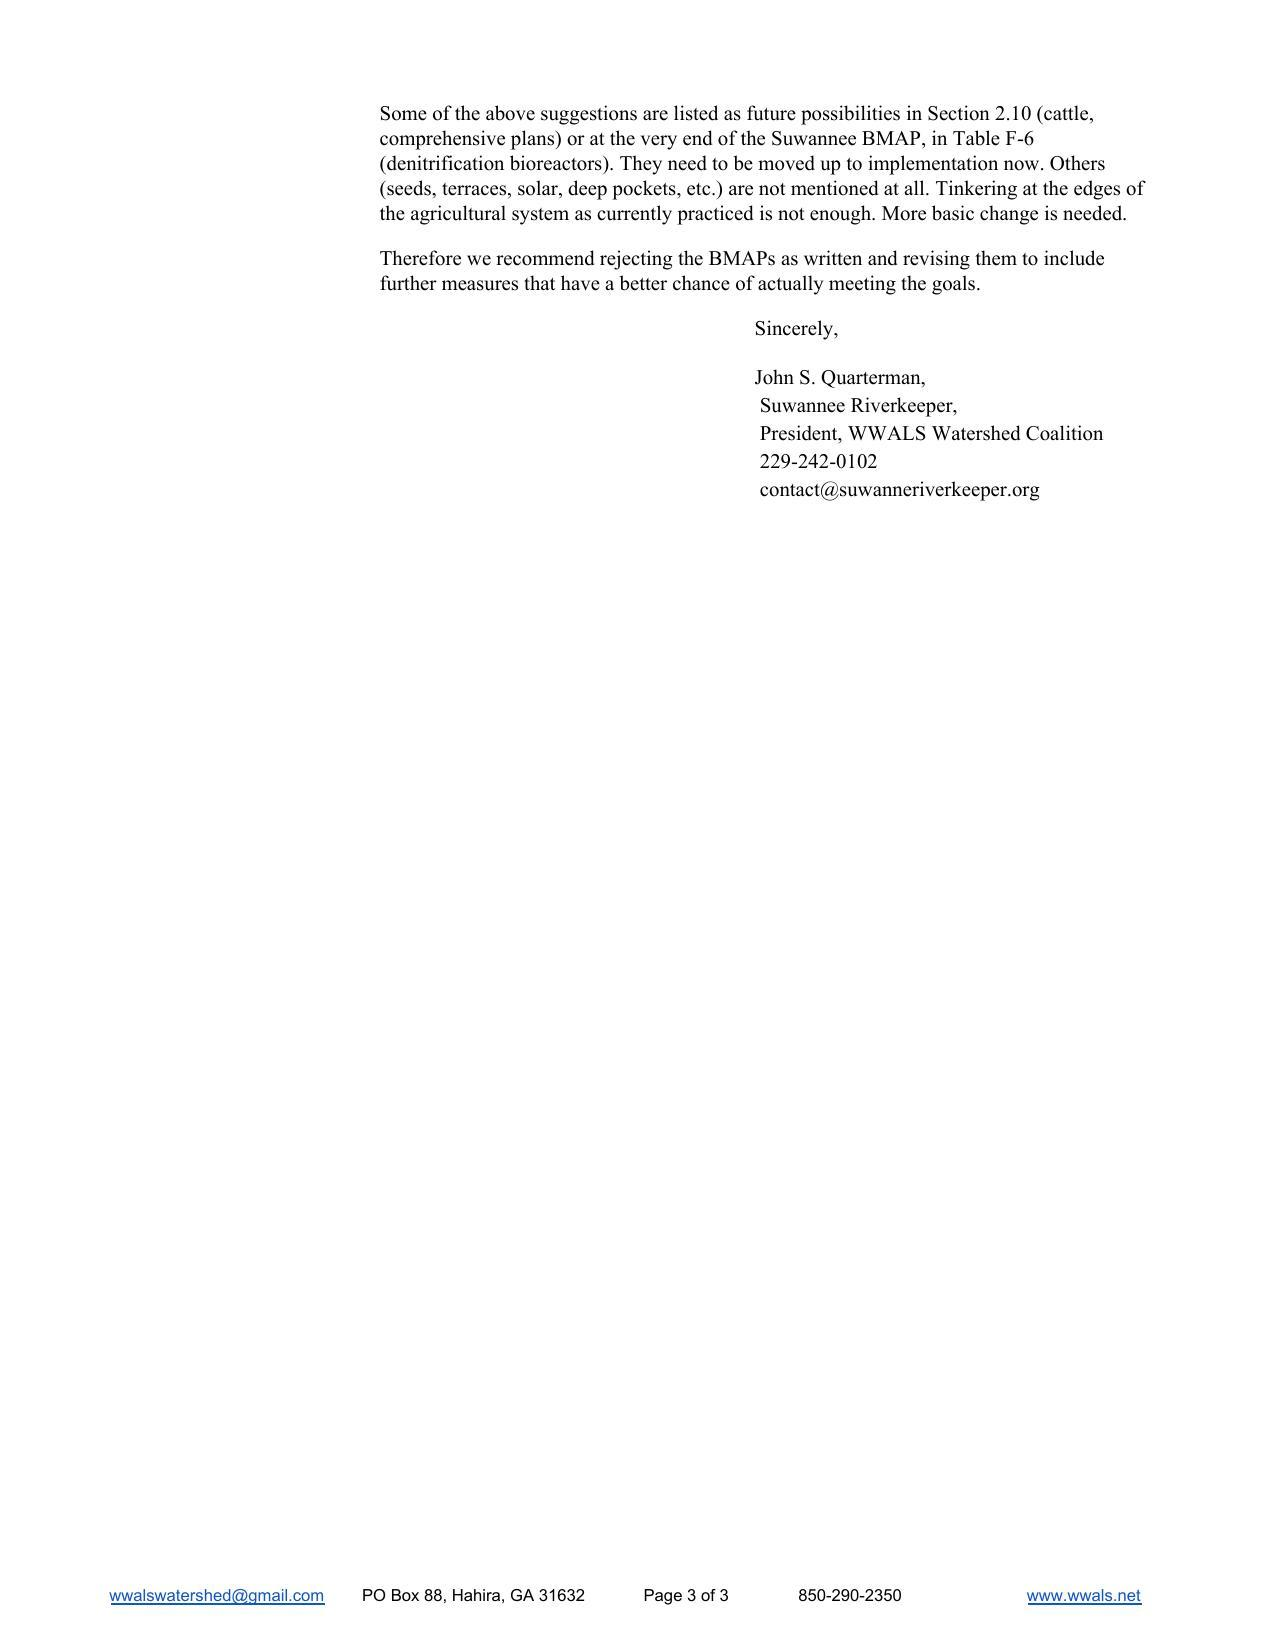 1275x1651 Try again, Pages, in WWALS to FDEP Re Suwannee River Basin Management Action Plan (BMAP), by John S. Quarterman, for WWALS.net, 31 May 2018